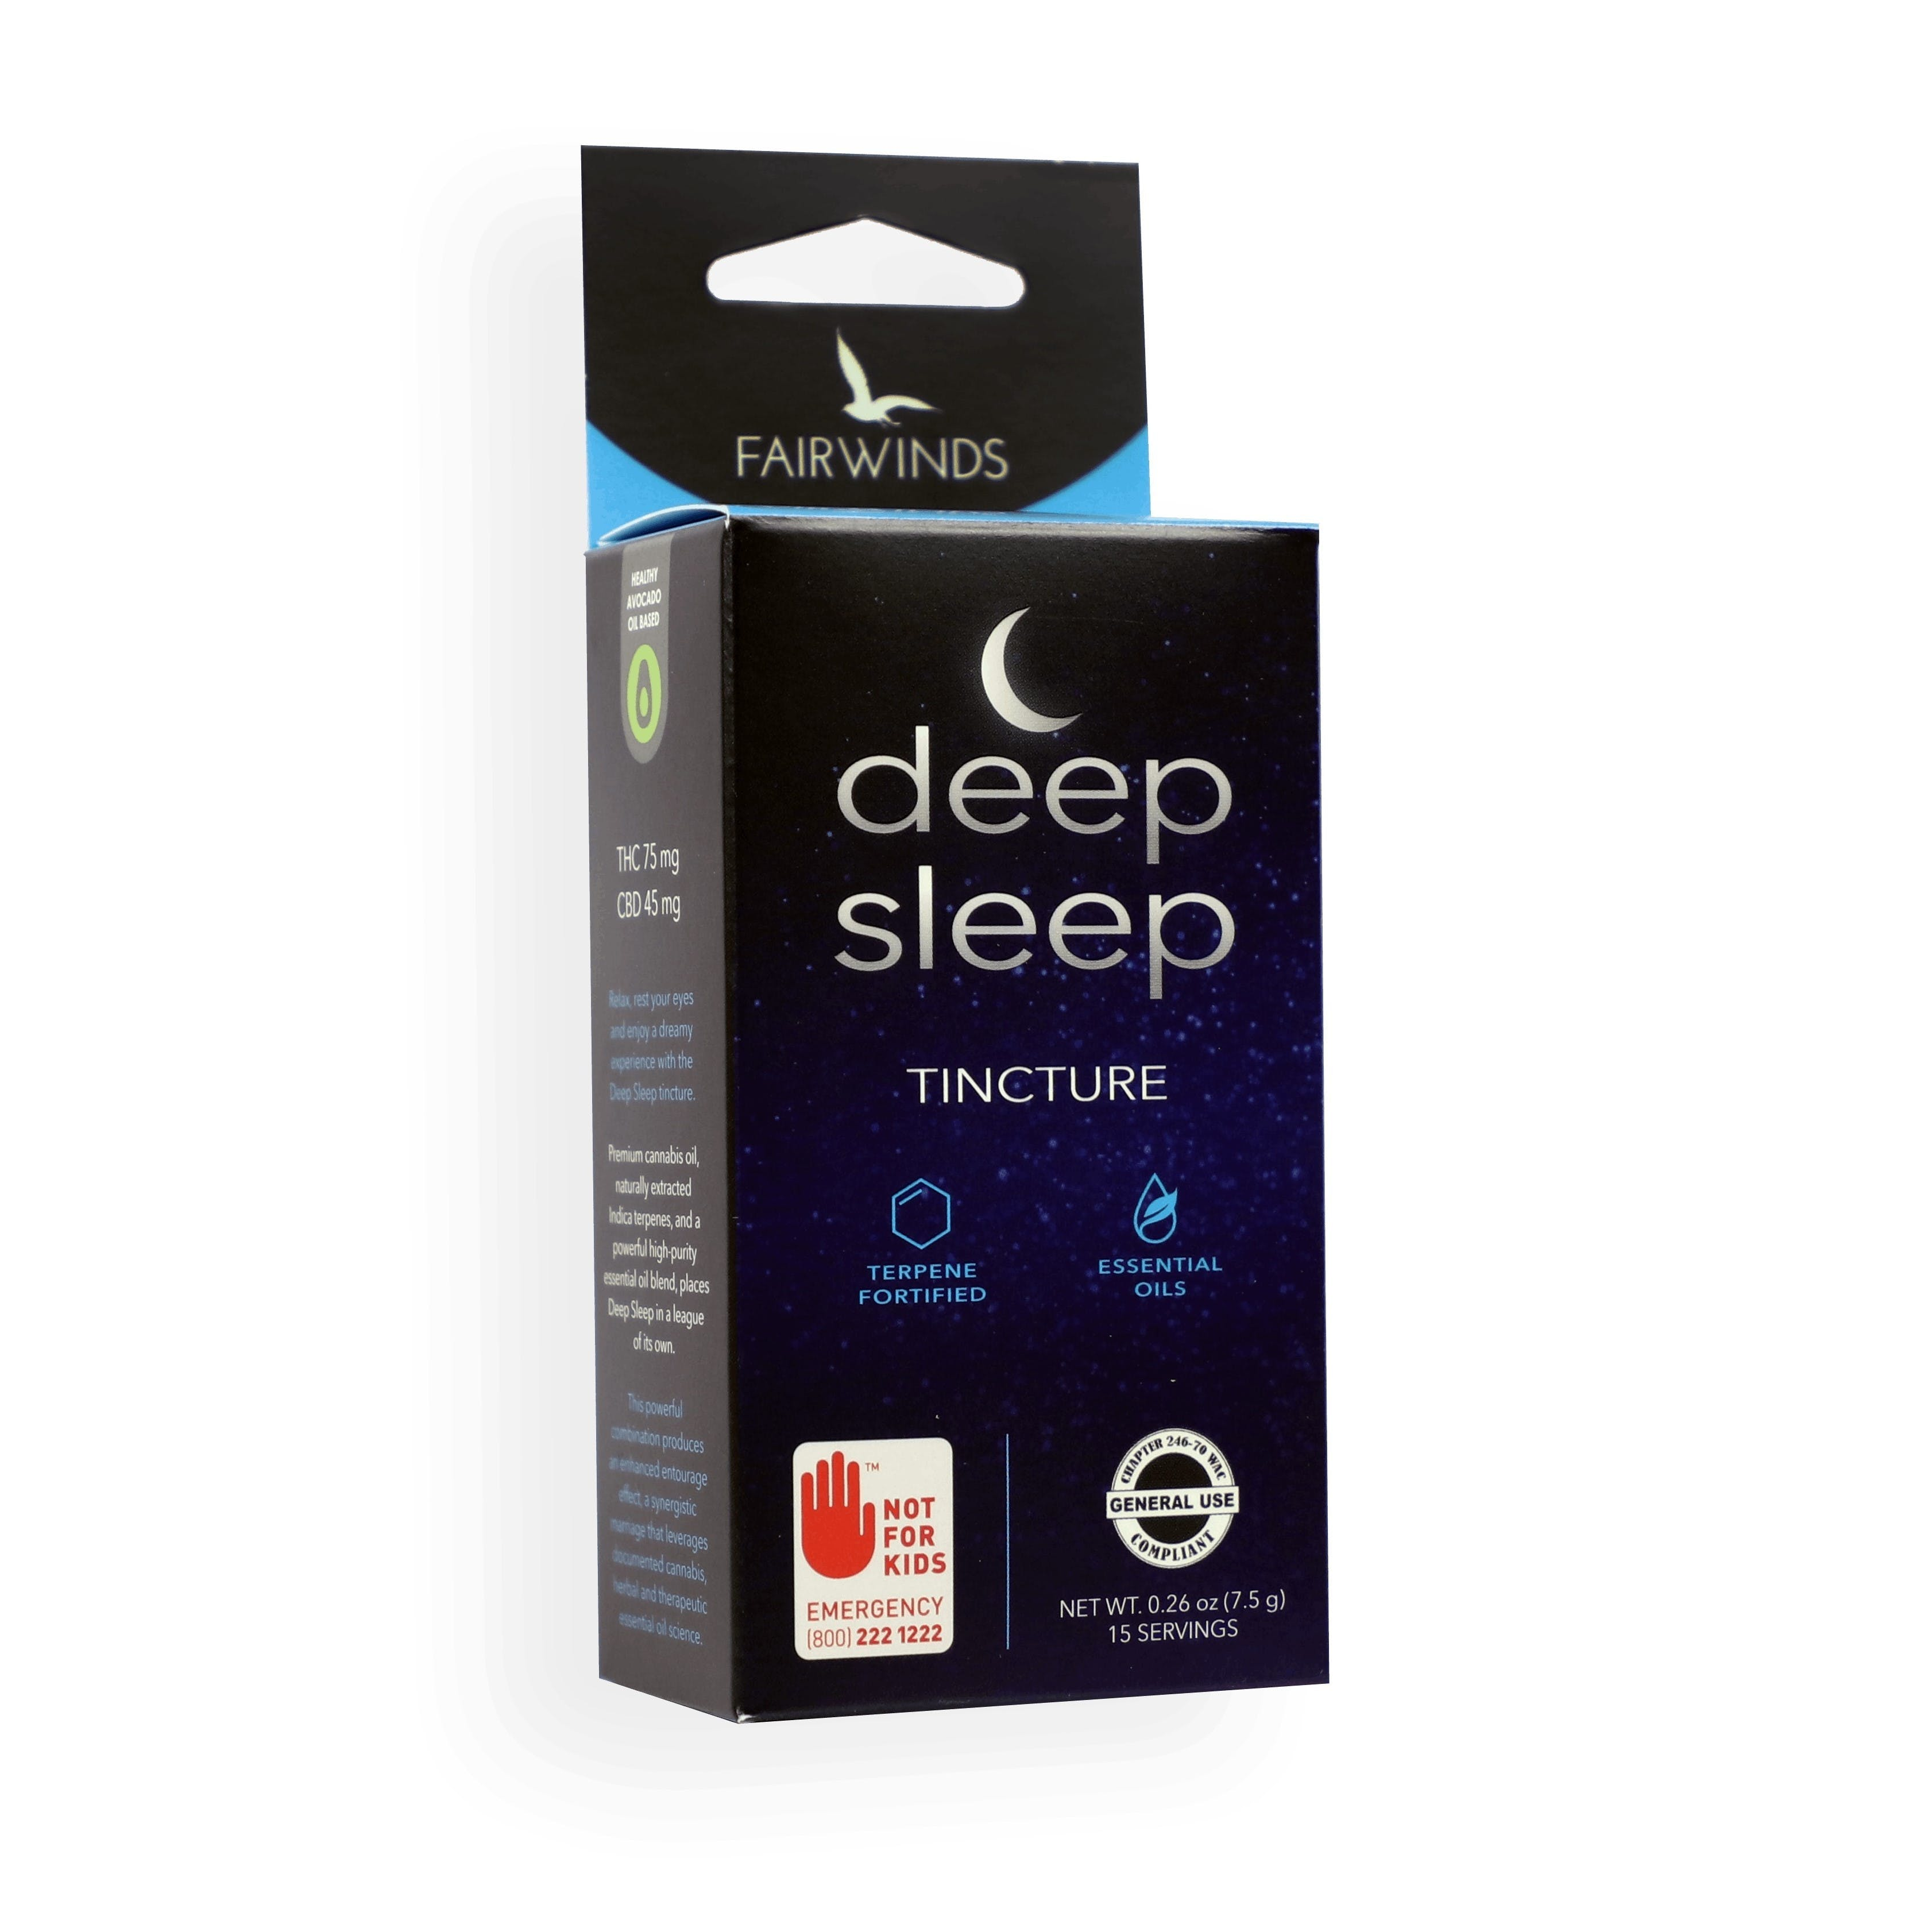 marijuana-dispensaries-112th-street-cannabis-in-puyallup-deep-sleep-tincture